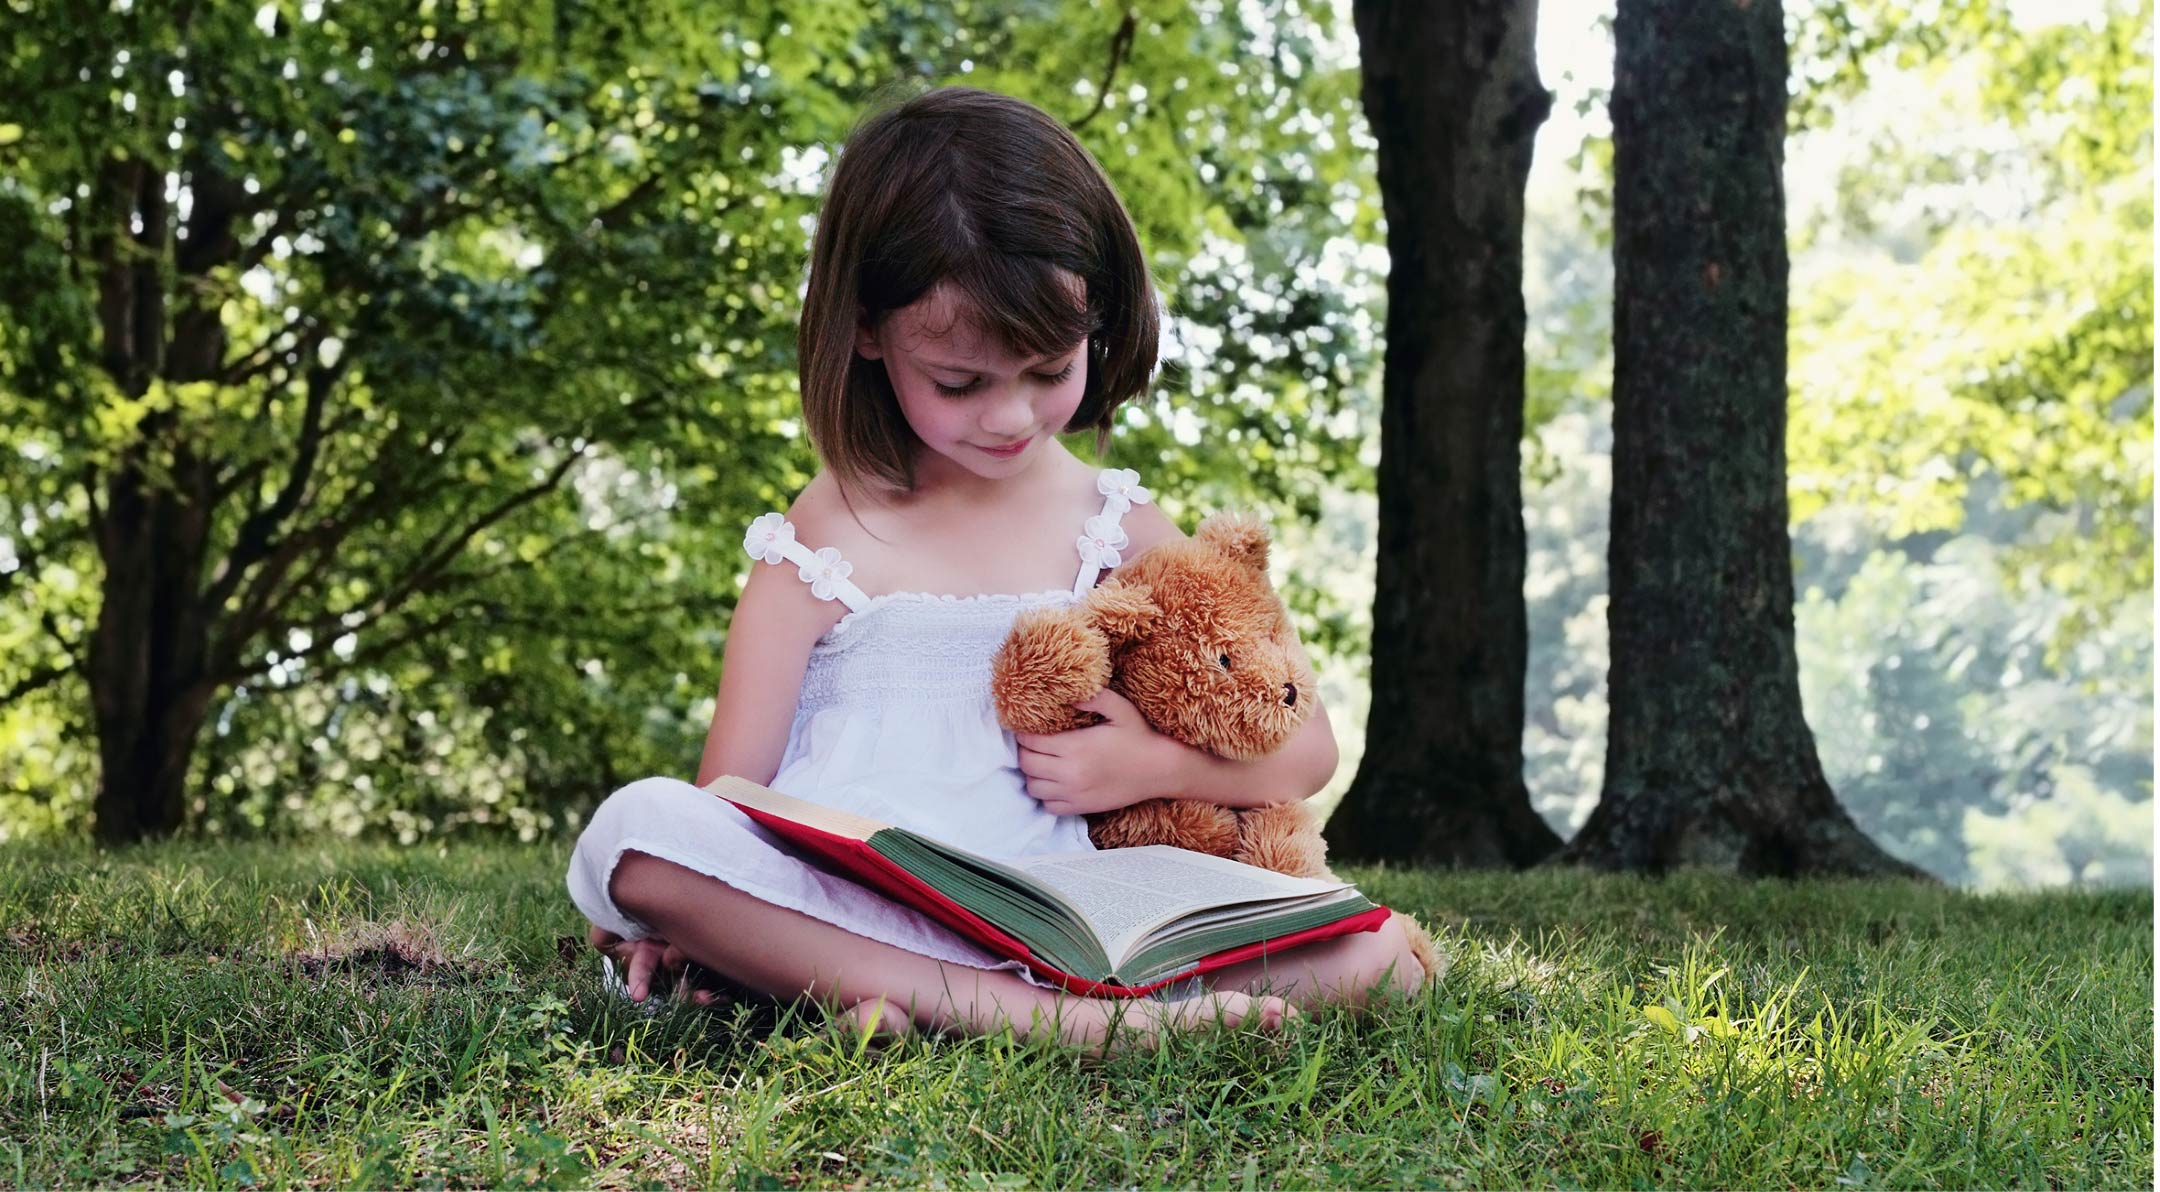 girl-reading-with-teddy2160